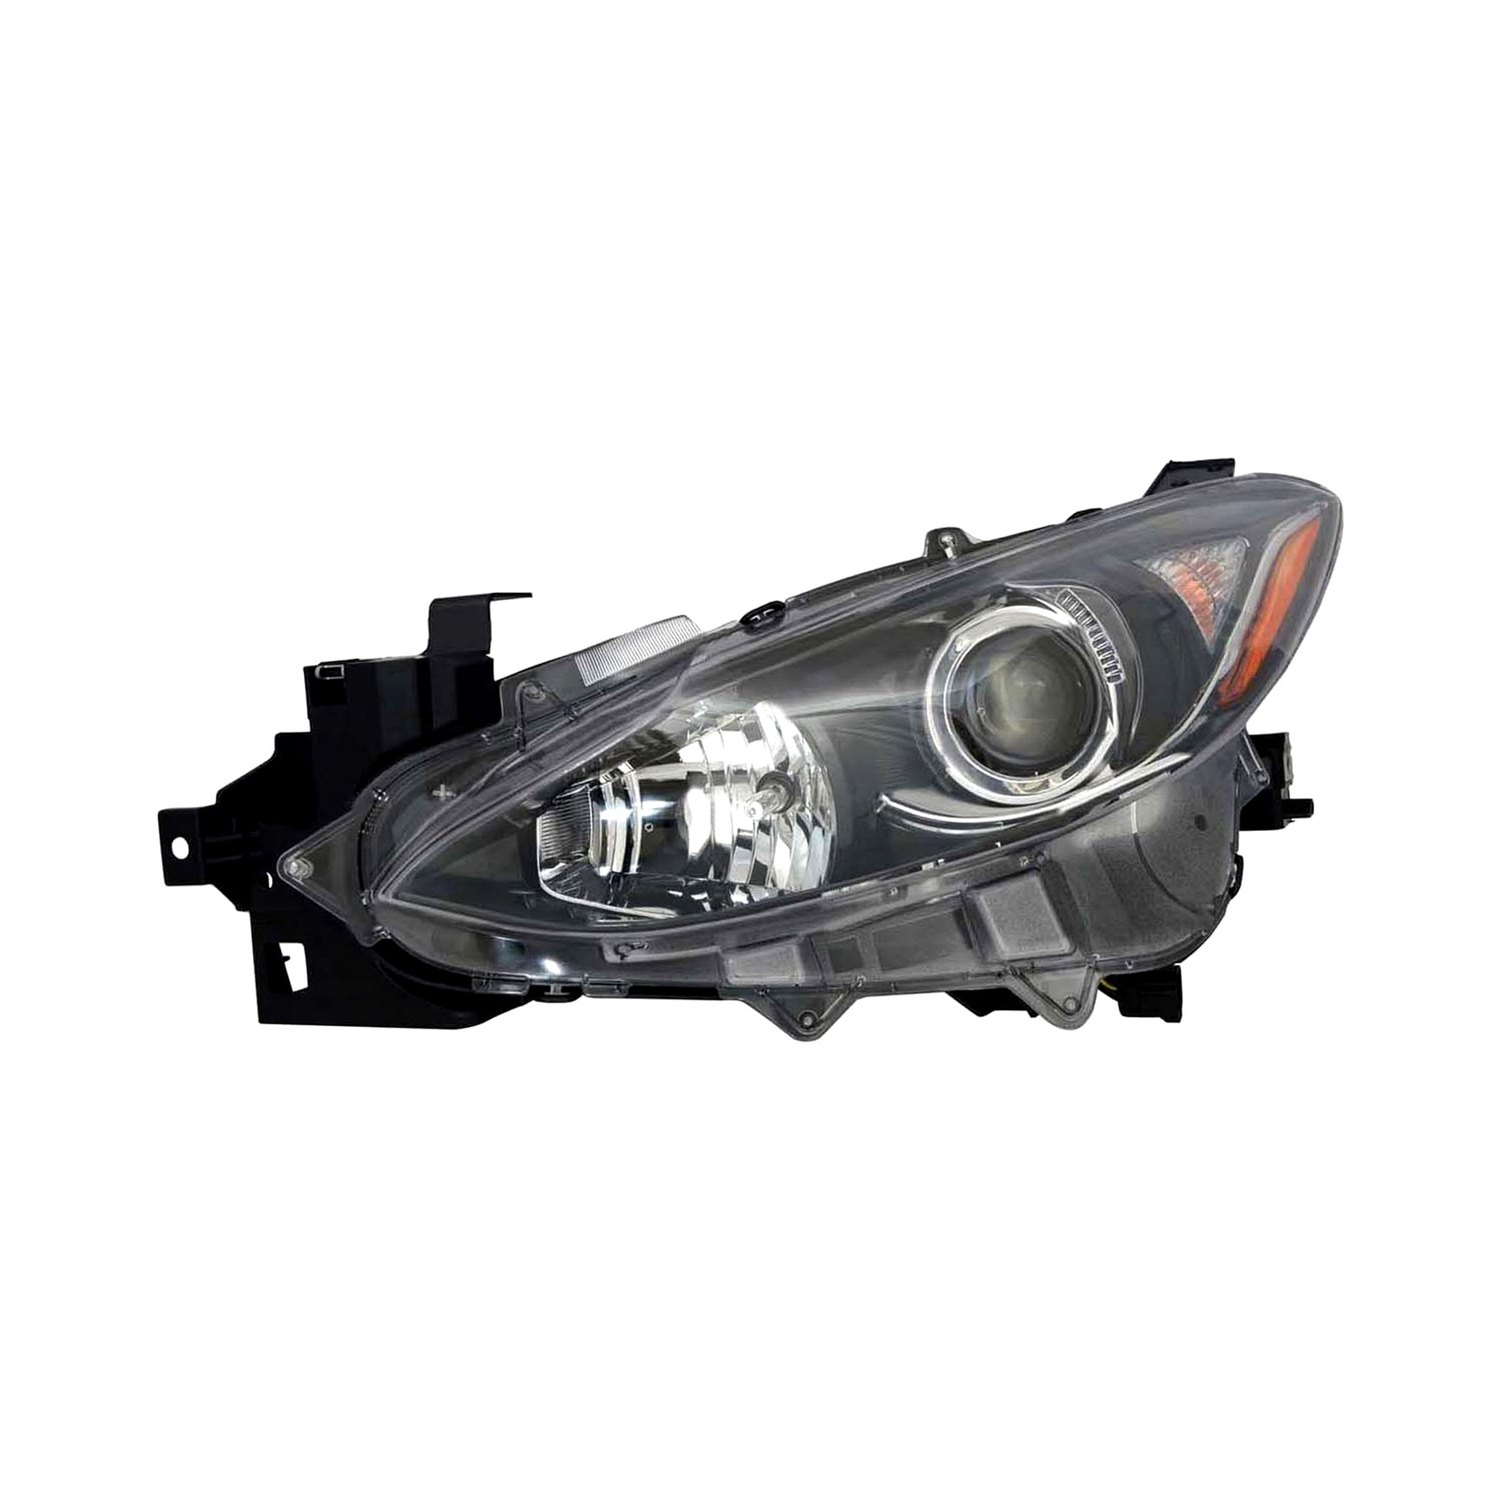 tyc mazda 3 2015 replacement headlight. Black Bedroom Furniture Sets. Home Design Ideas